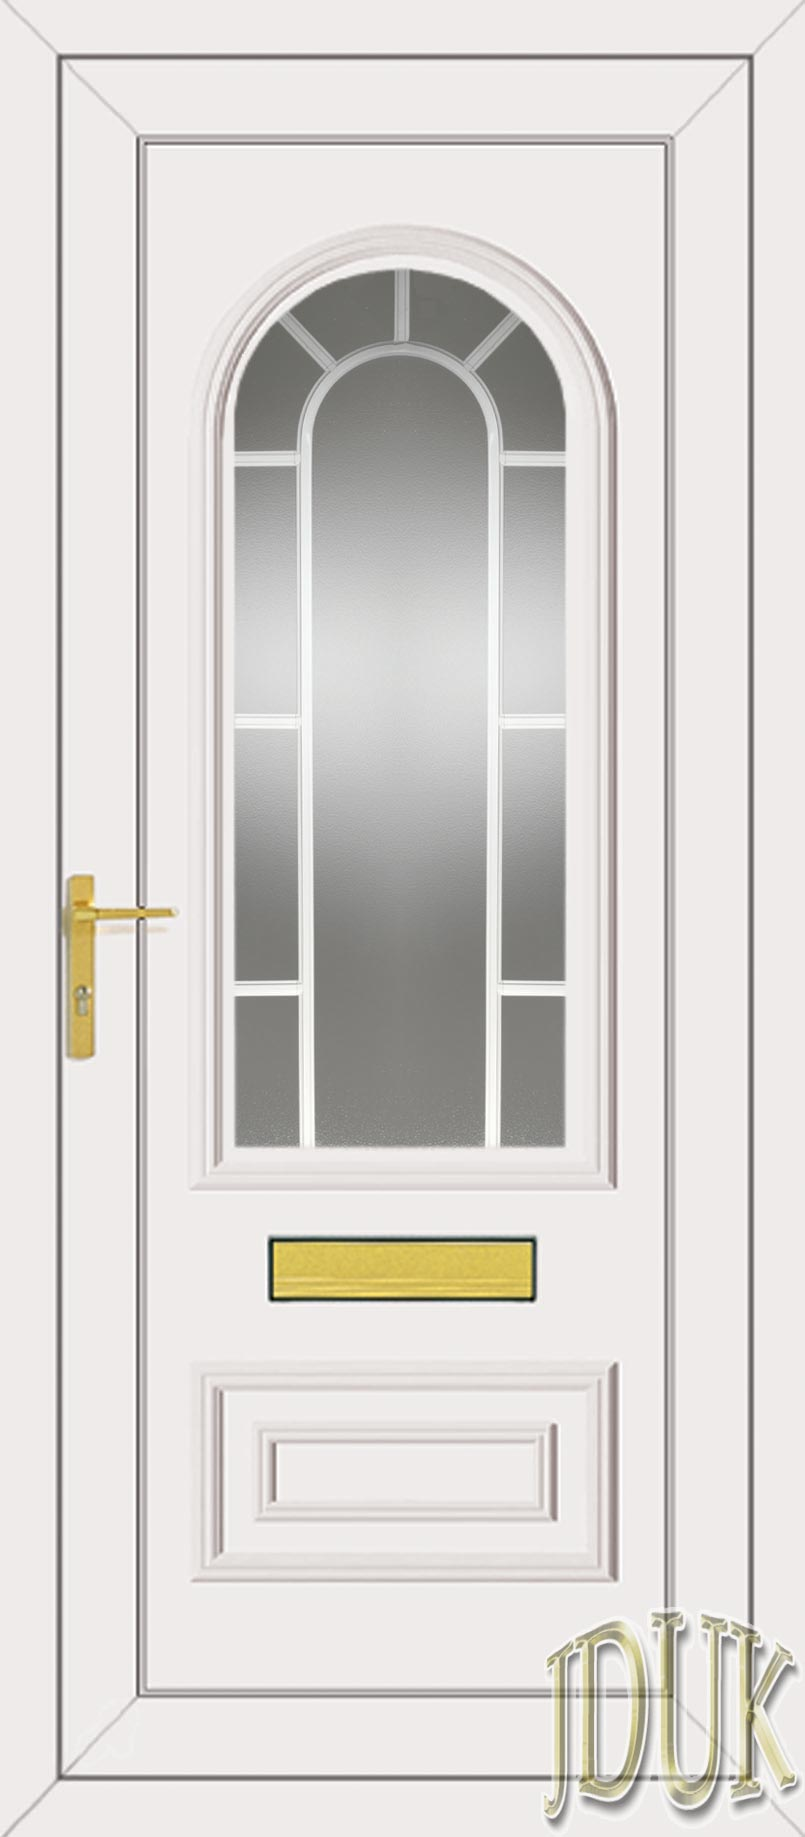 Truman one classic georgian bar upvc front door for Upvc glass front doors